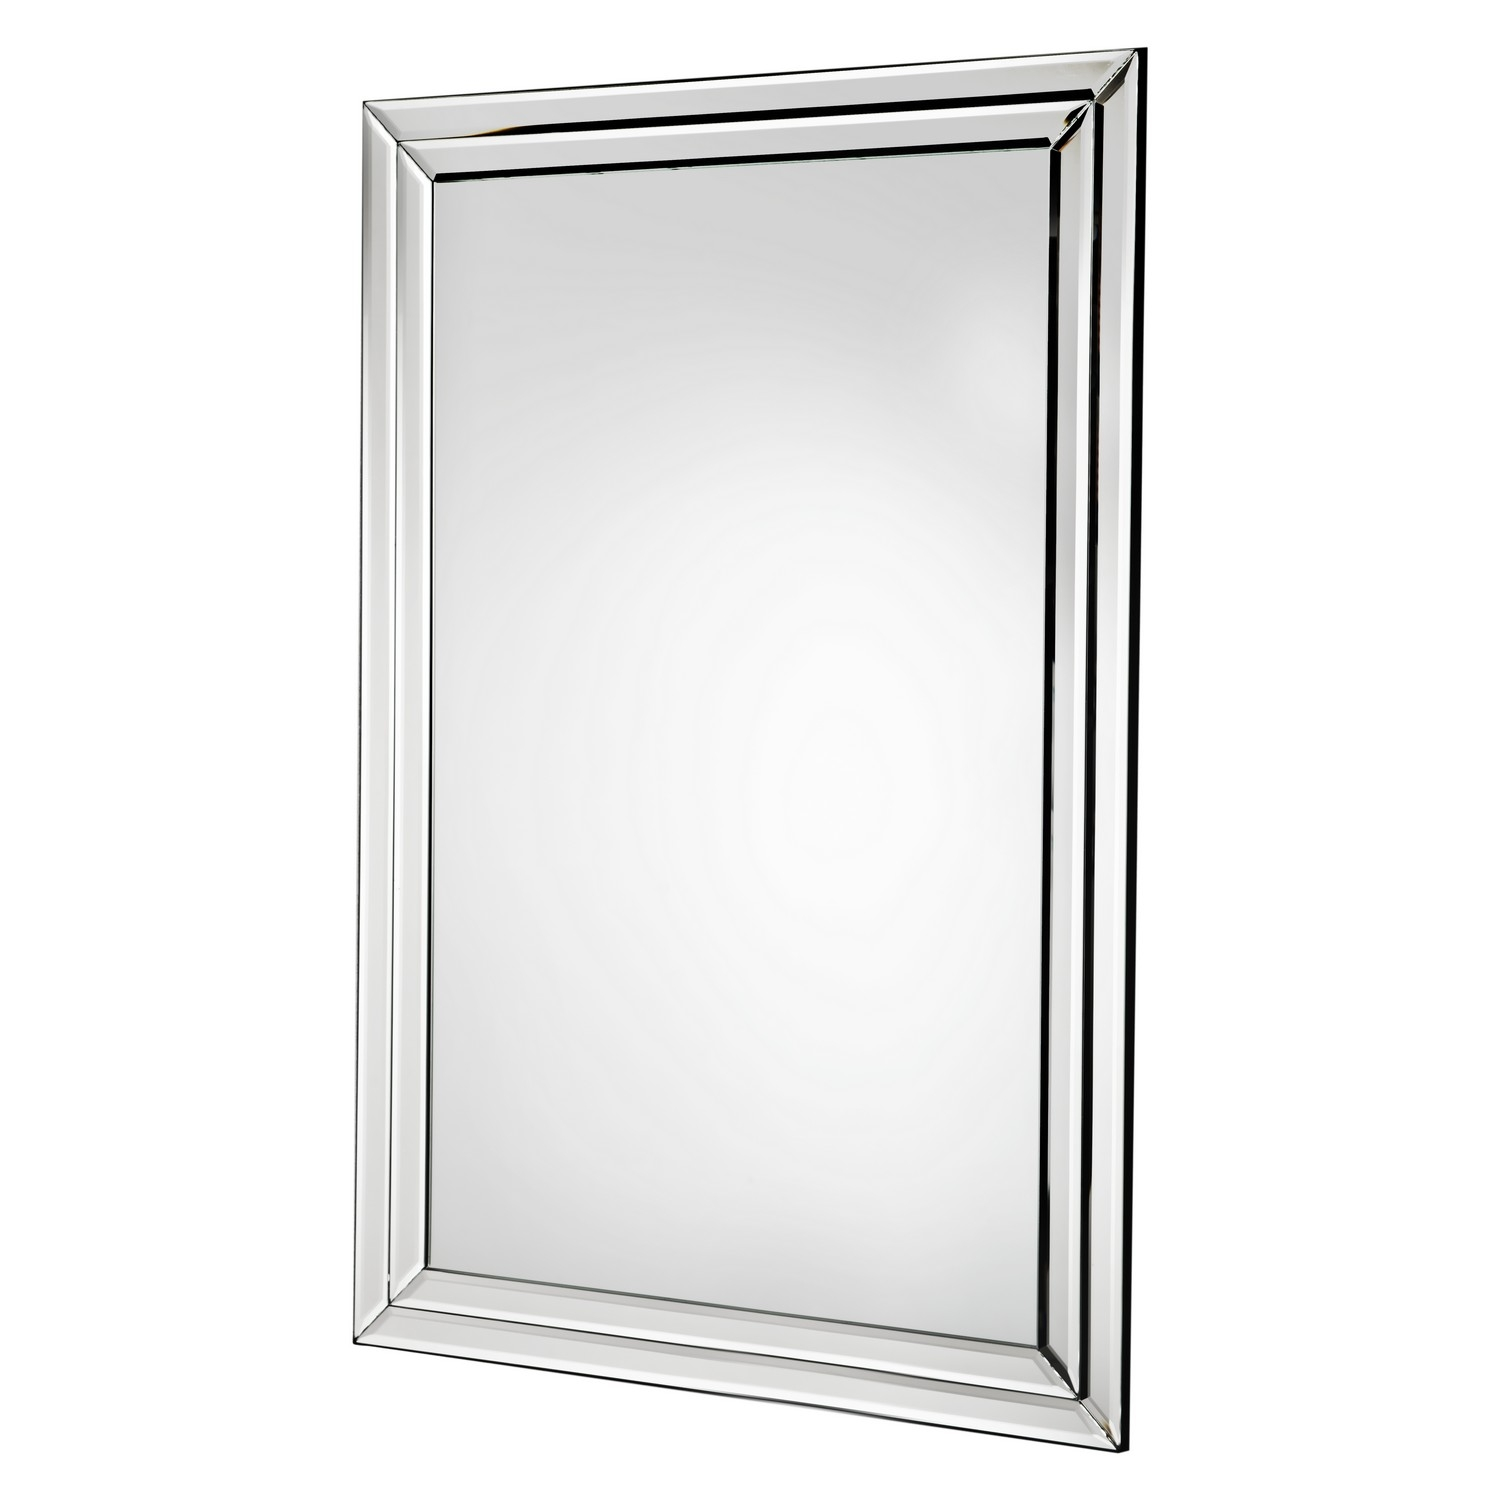 Buy Double Frame Beveled Glass Mirror Mirrors The Range Regarding Double Bevelled Mirror (View 2 of 15)